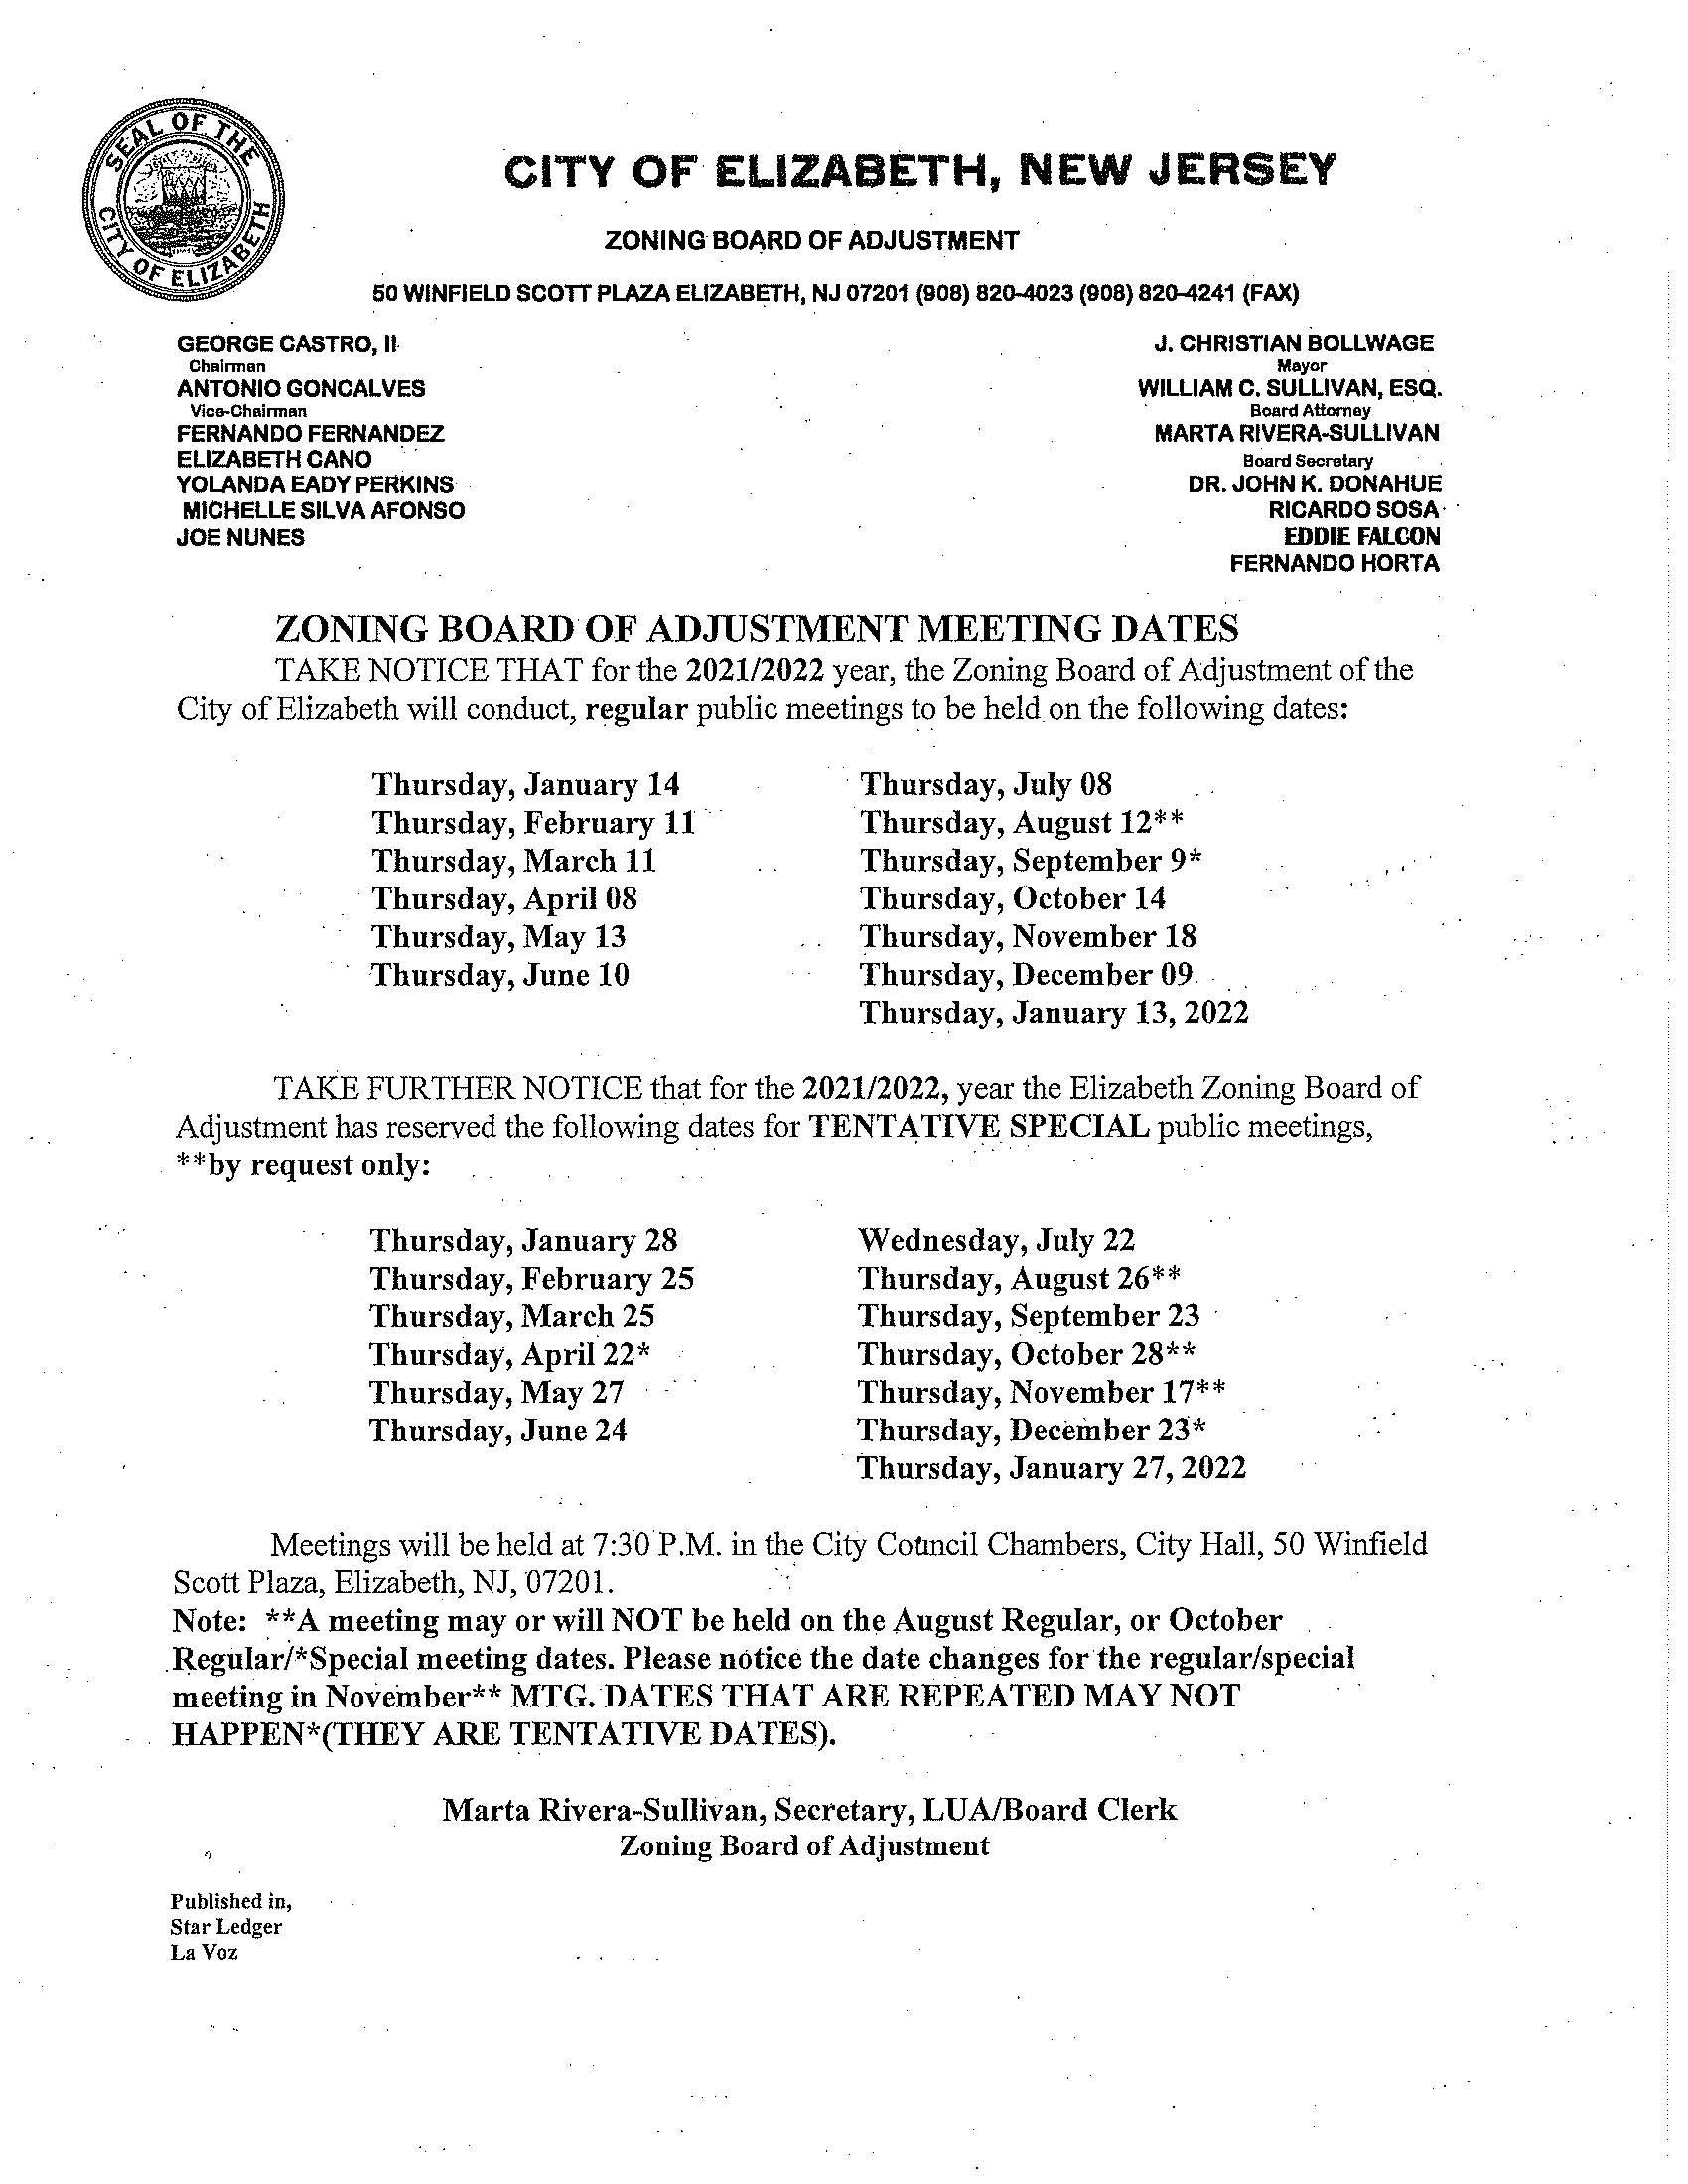 Zoning Board Meeting Dates